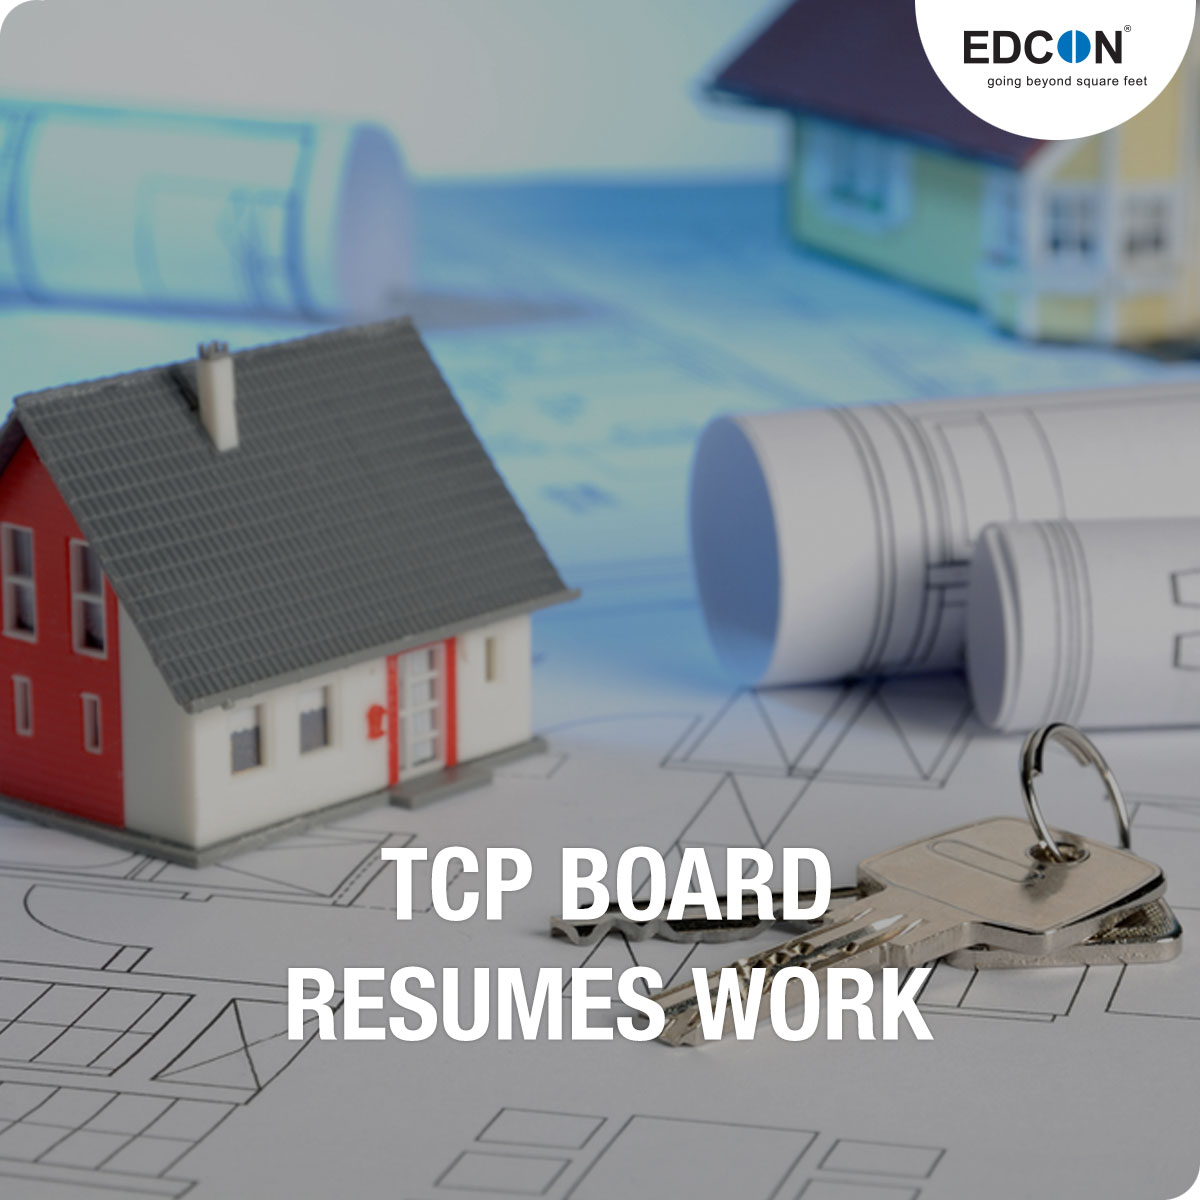 TCP Board resumes work